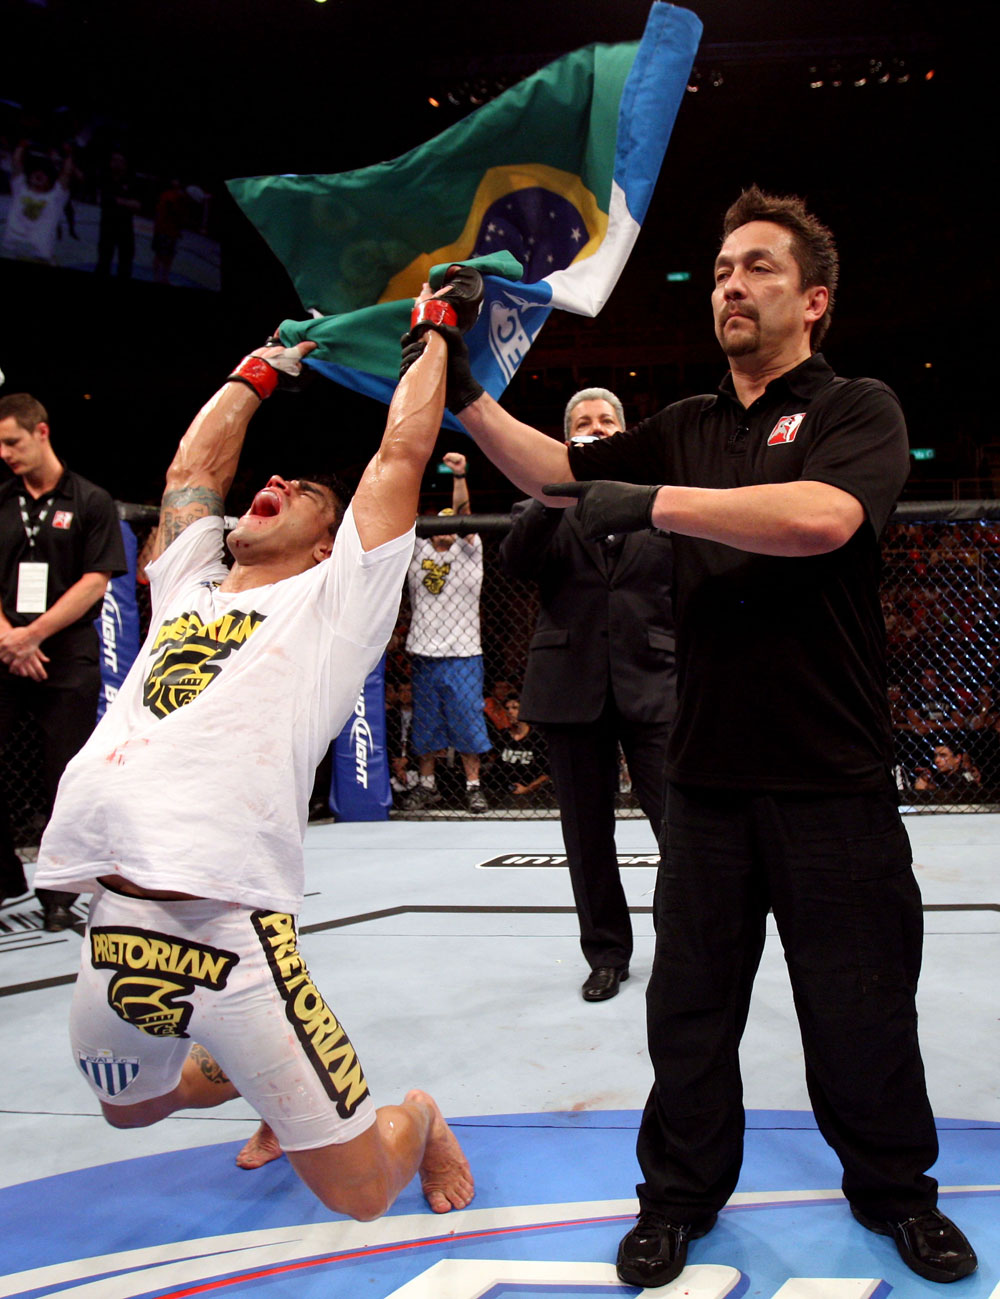 RIO DE JANEIRO, BRAZIL - JANUARY 14:  Referee Mario Yamasaki (R) holds up Thiago Tavares (L) hand as he celebrates after defeating Sam Stout (not pictured) in a lightweight bout during UFC 142 at HSBC Arena on January 14, 2012 in Rio de Janeiro, Brazil.  (Photo by Josh Hedges/Zuffa LLC/Zuffa LLC via Getty Images)